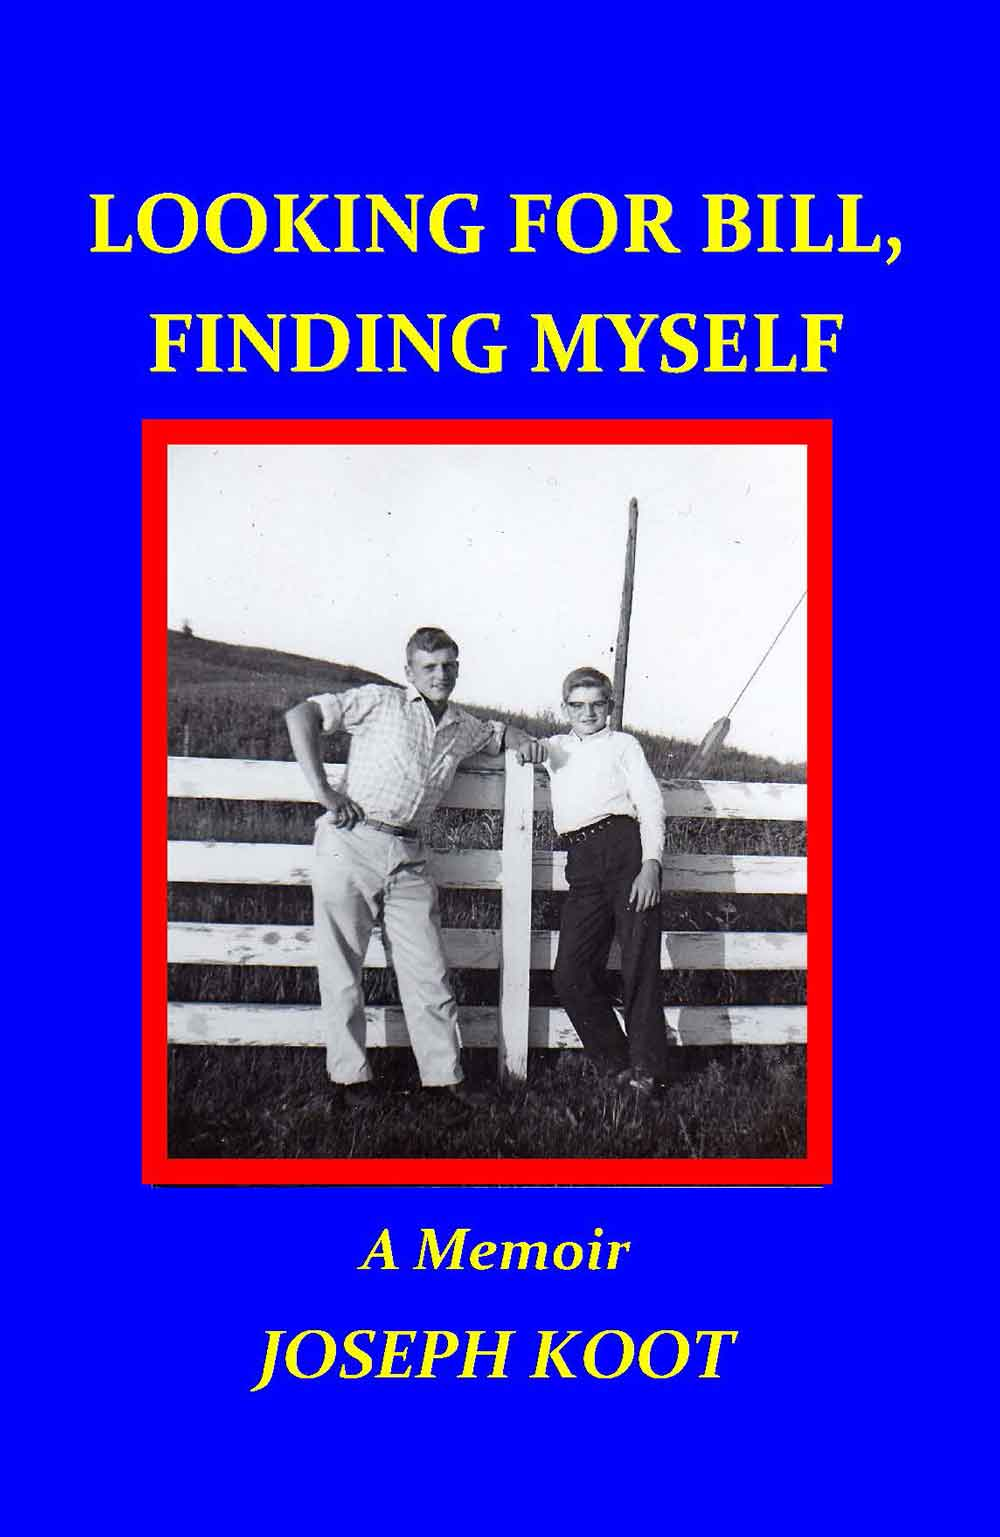 Looking for Bill, Finding Myself by Joseph Koot [book cover]